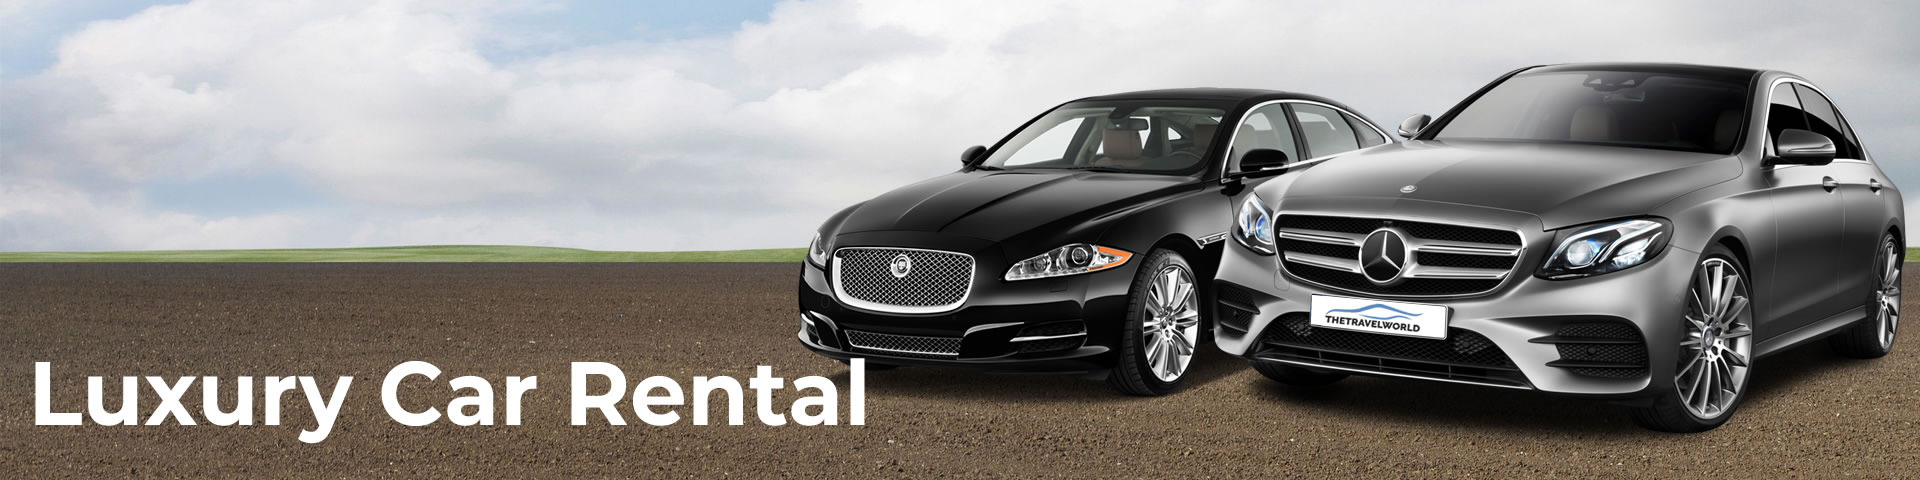 luxury car rental ahmedabad